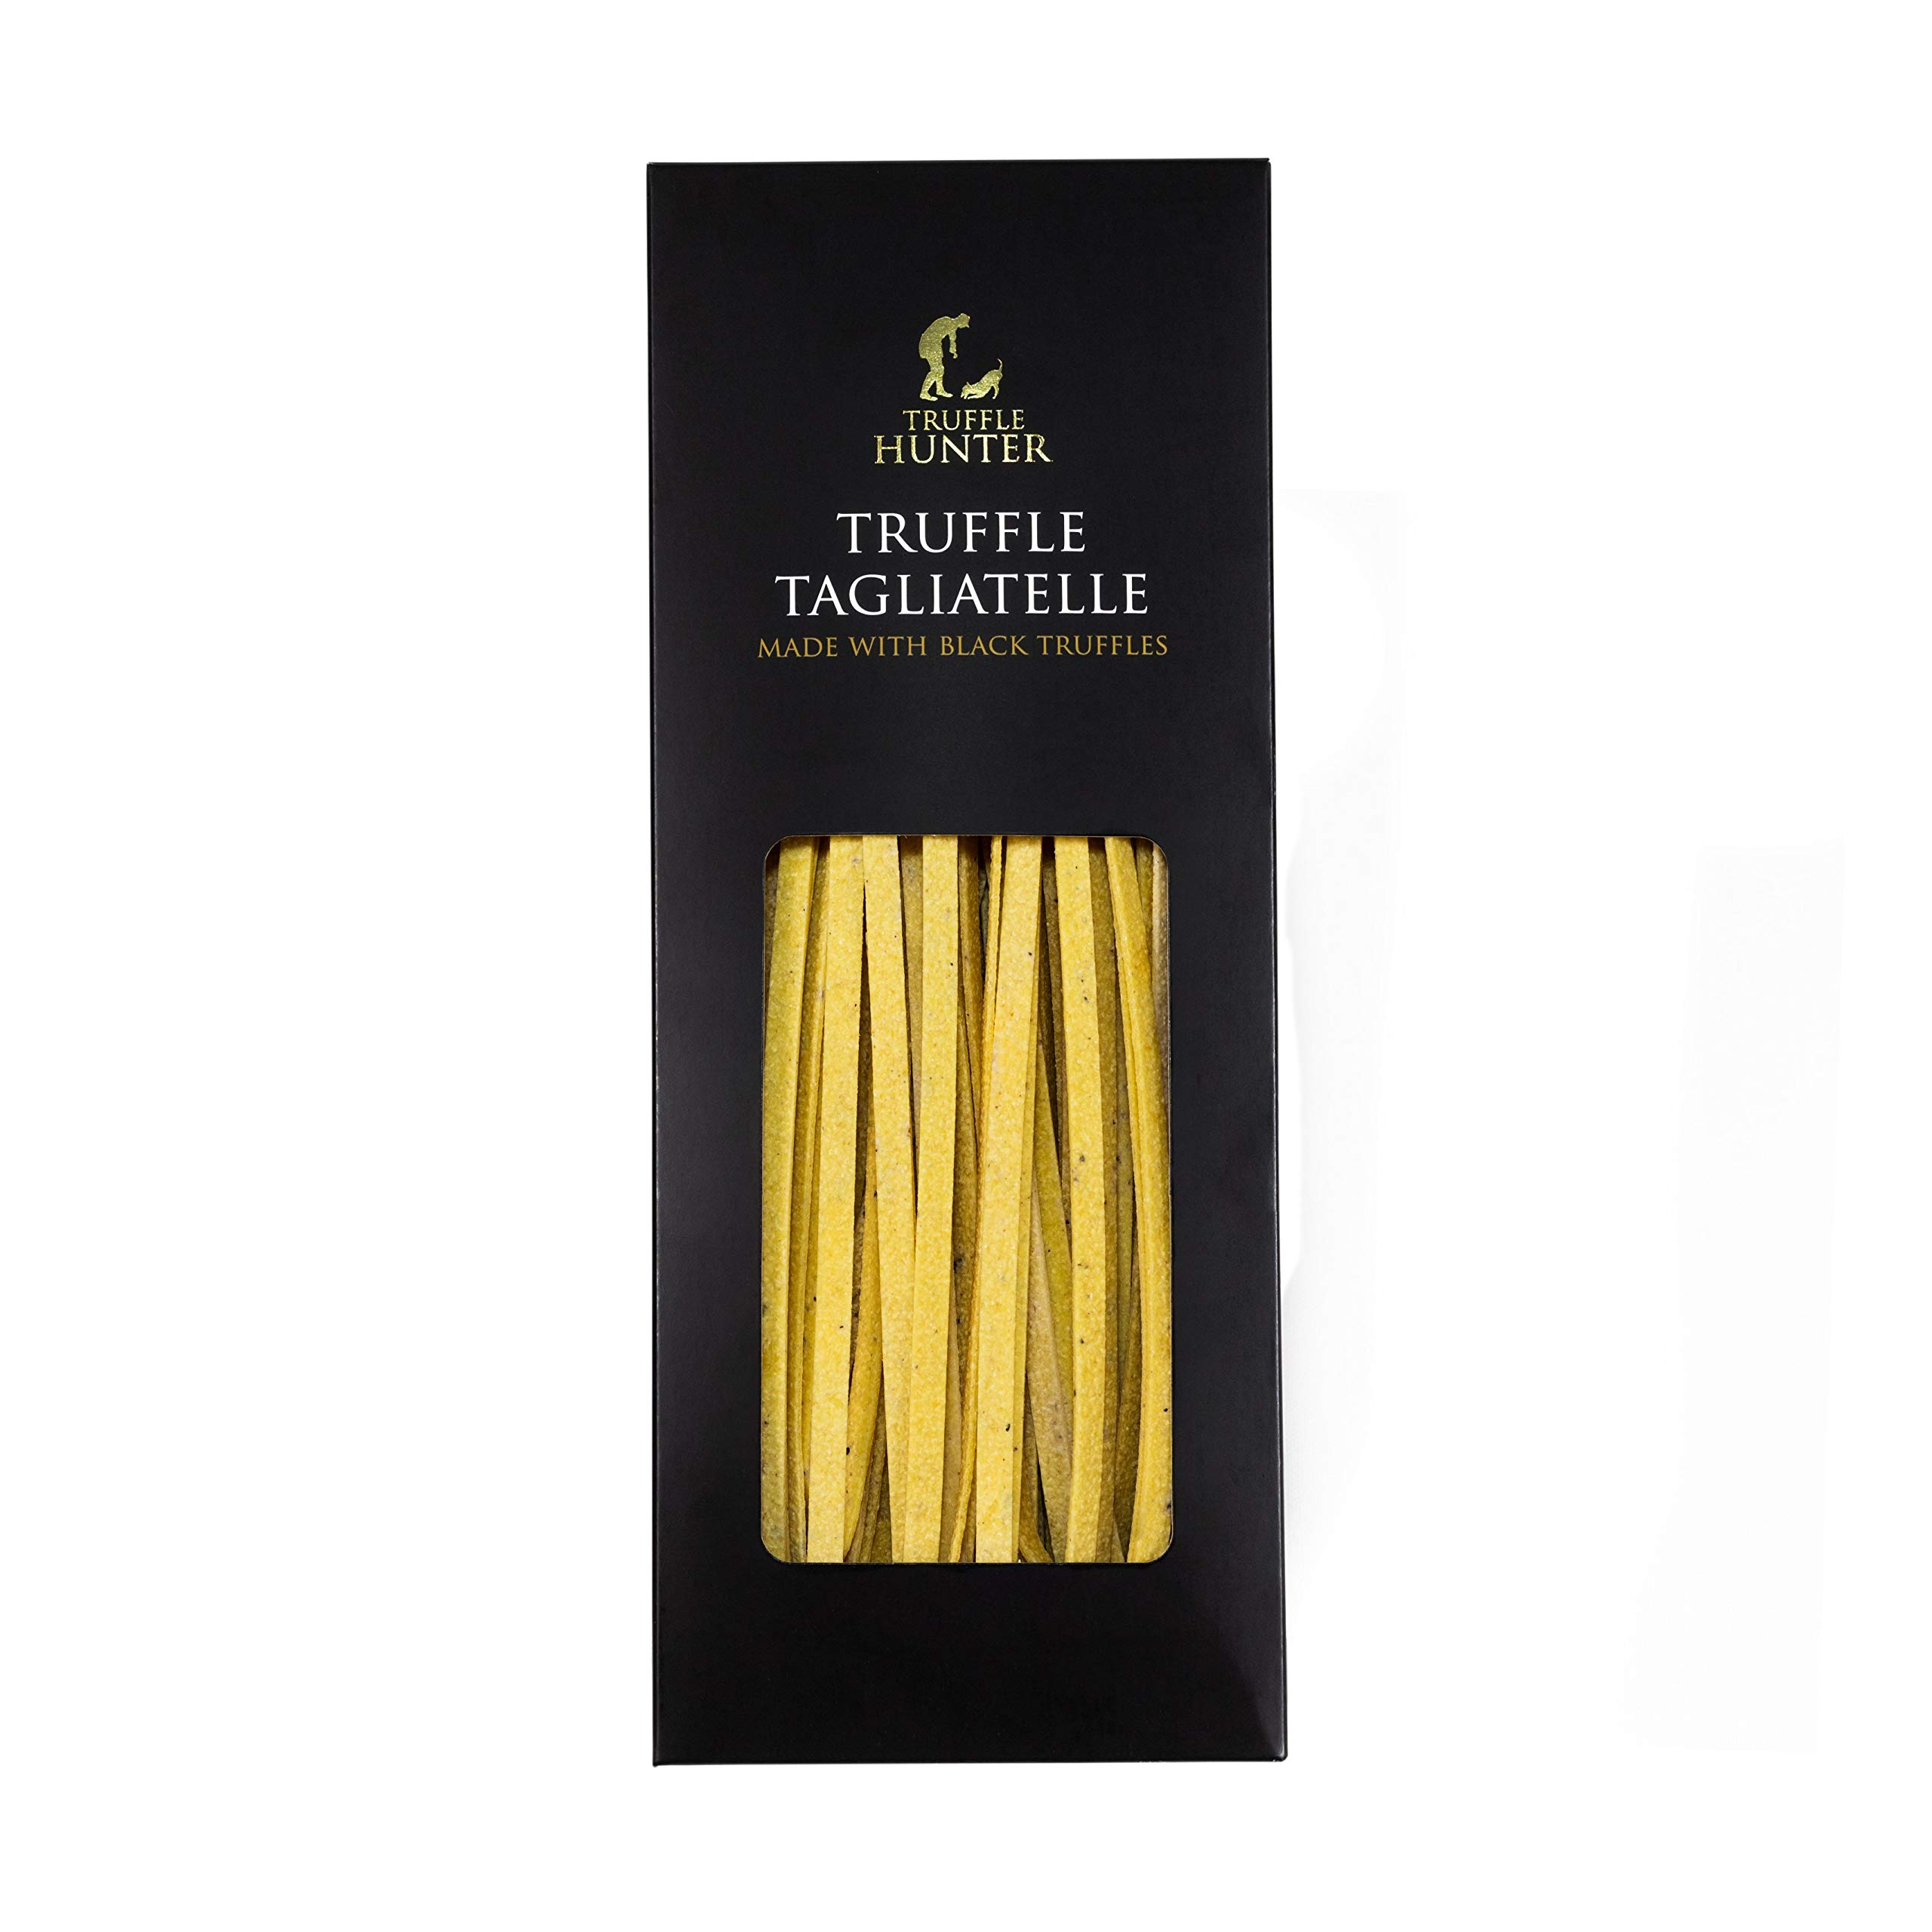 TruffleHunter Real Black Truffle Tagliatelle Pasta (8.82oz) in a Gift Box - Made by an Expert Pasta Chef with Durum Wheat - Luxury & Gourmet Artisan Cooking Food - Vegetarian, Nut Free